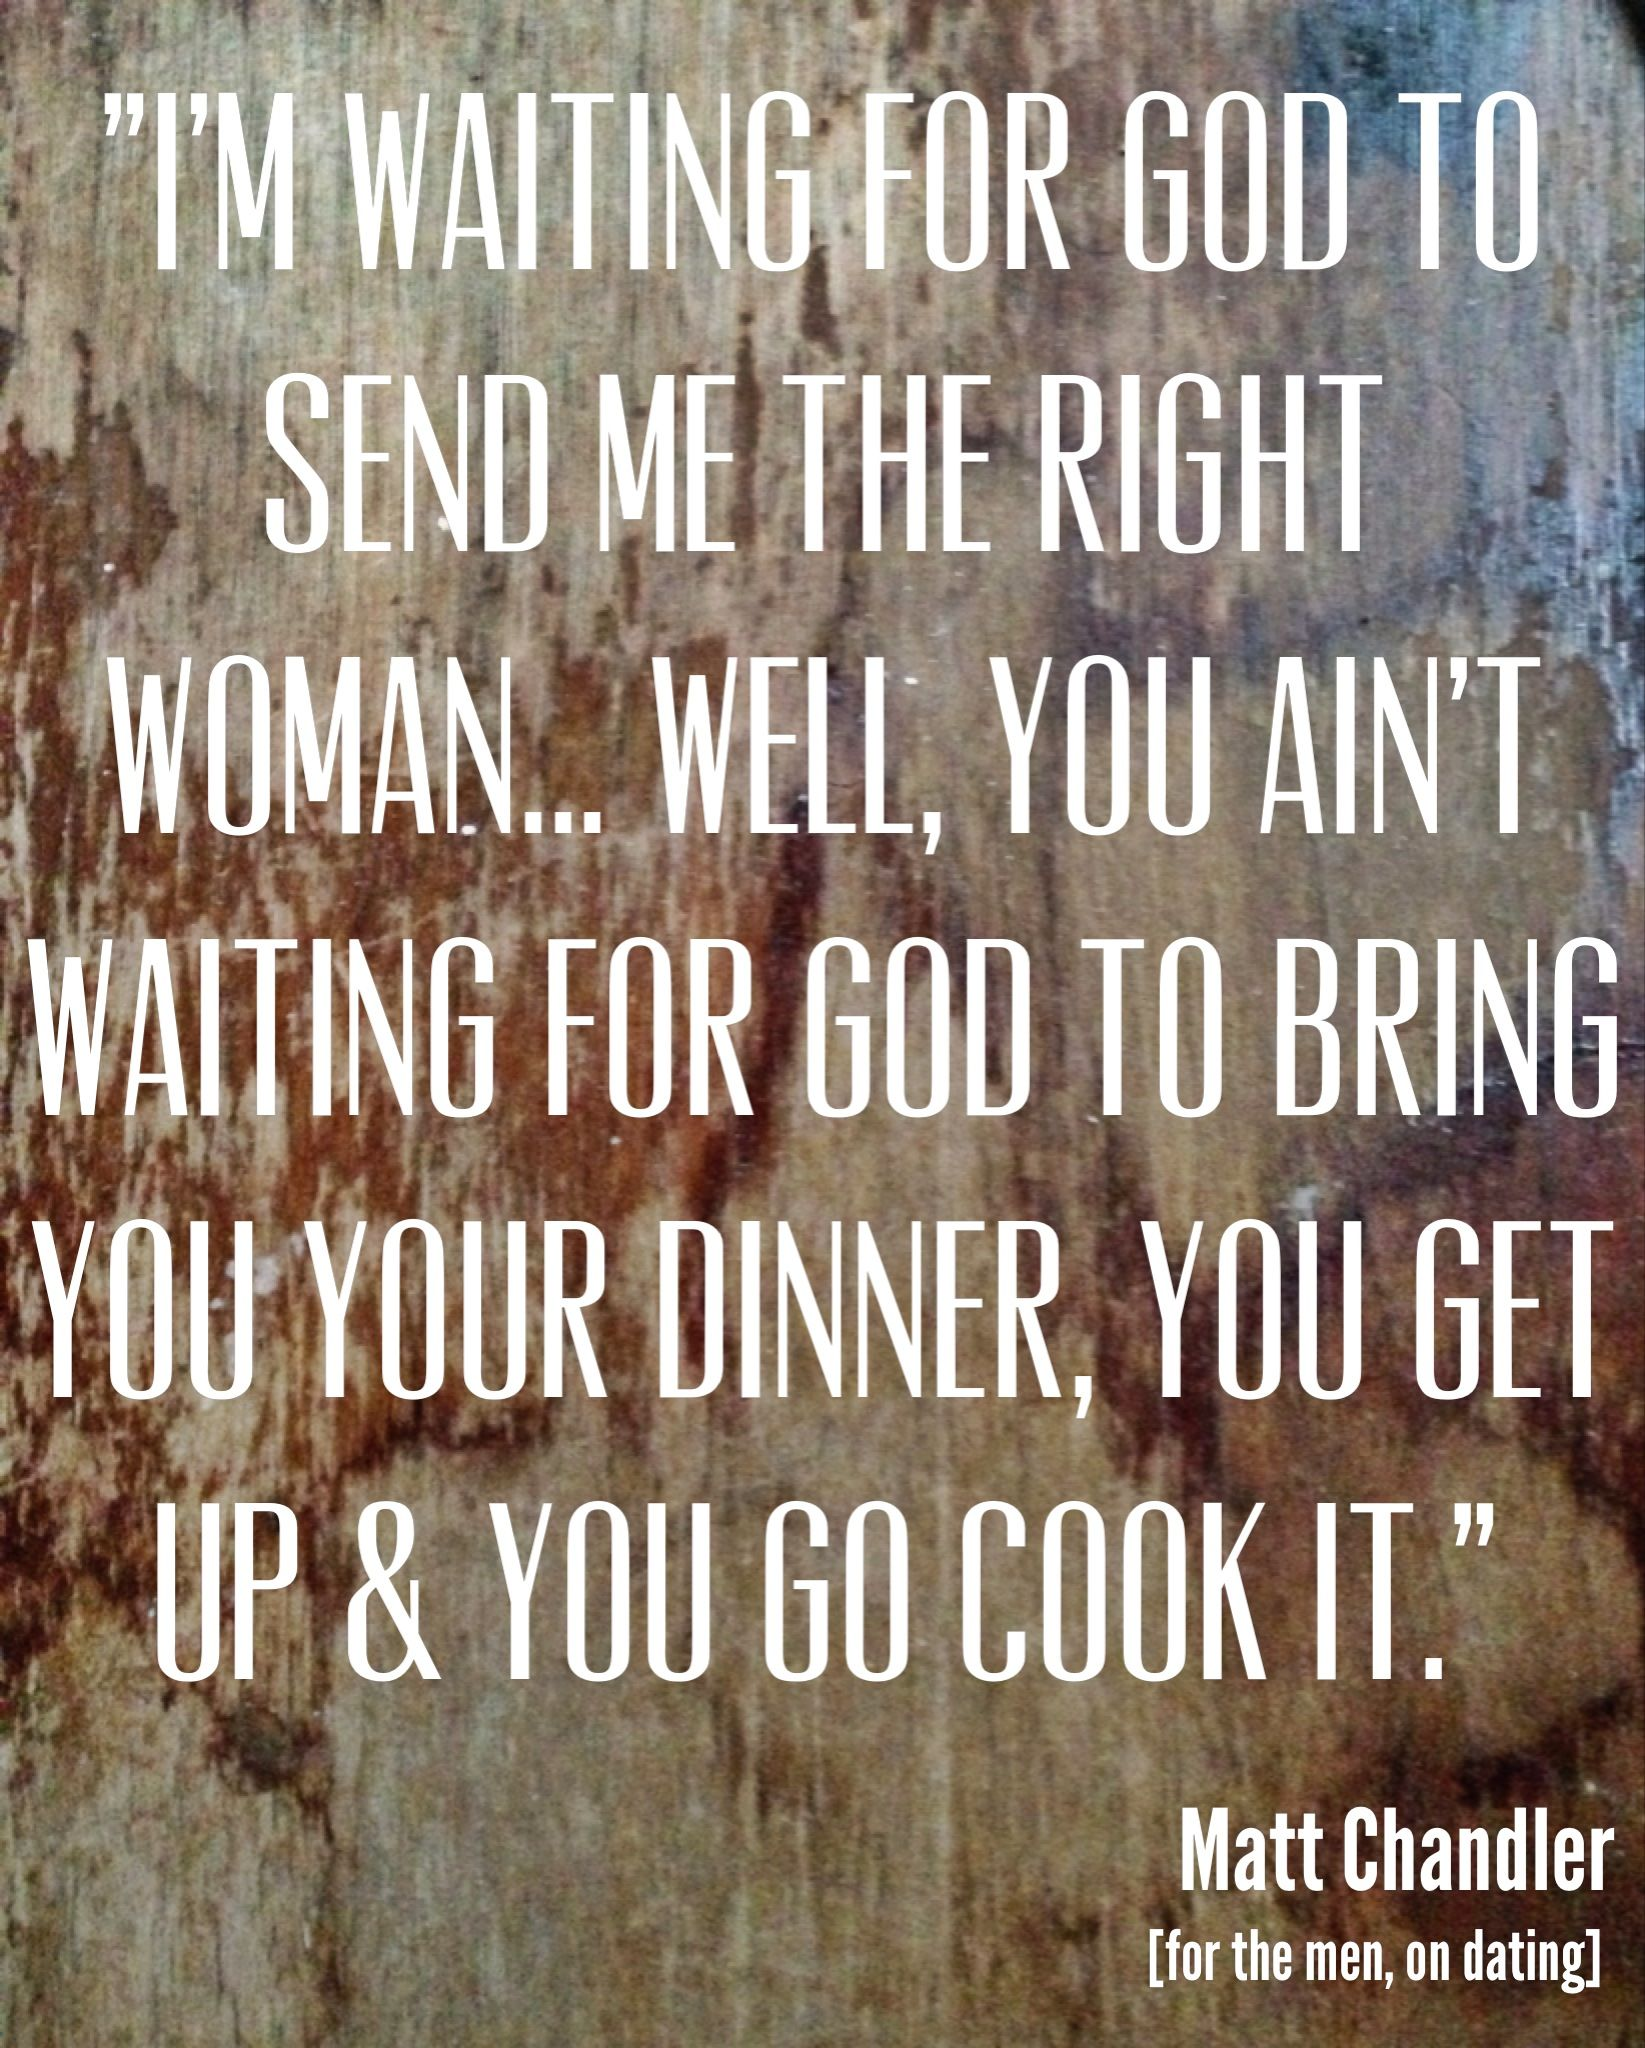 Does The Lord serve you your food?